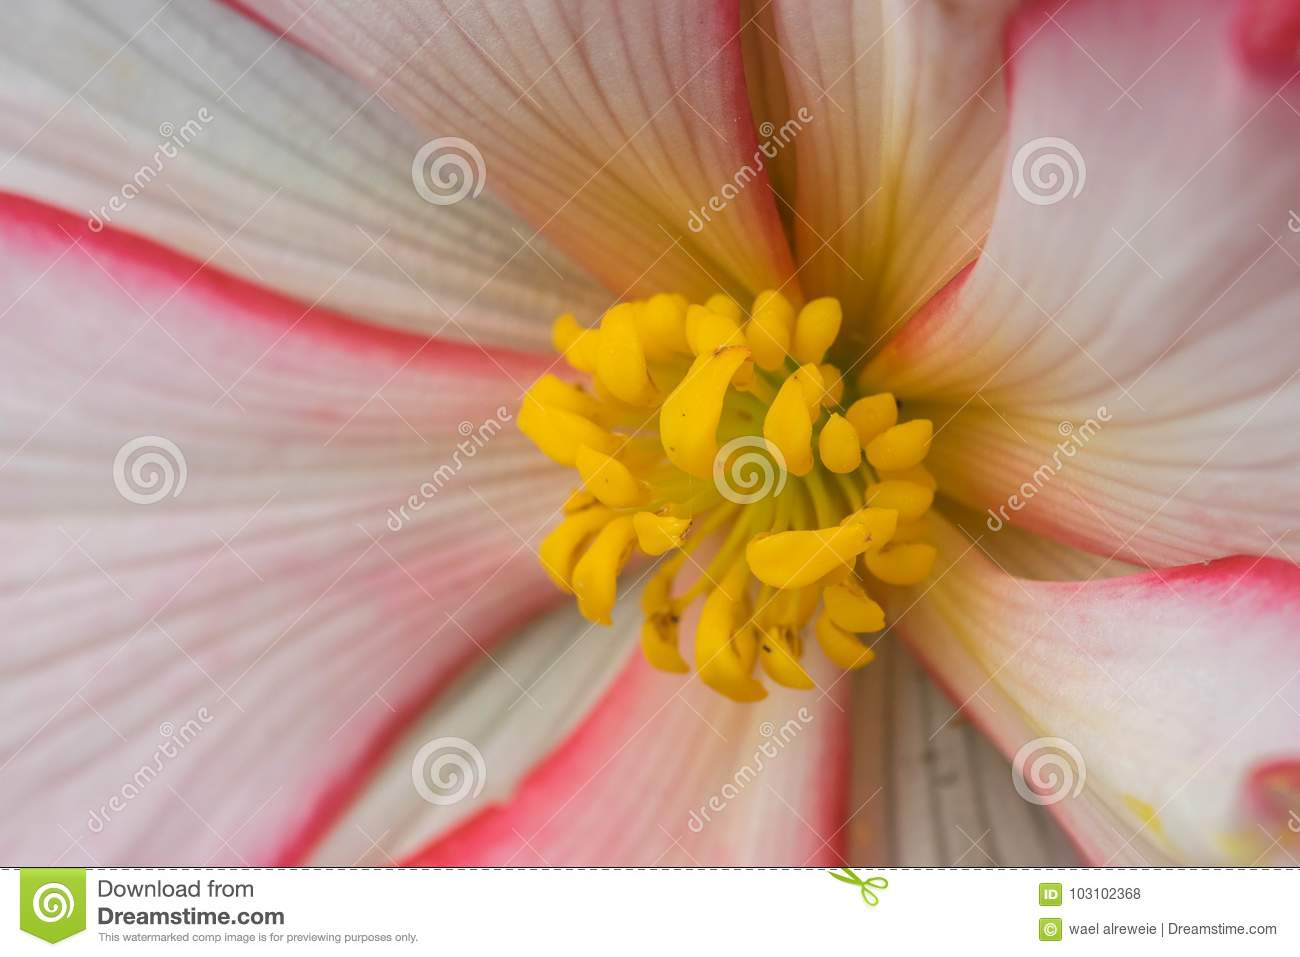 Extreme Close Up Of A Colourful Flower Stamen And Stigma. Stock ...